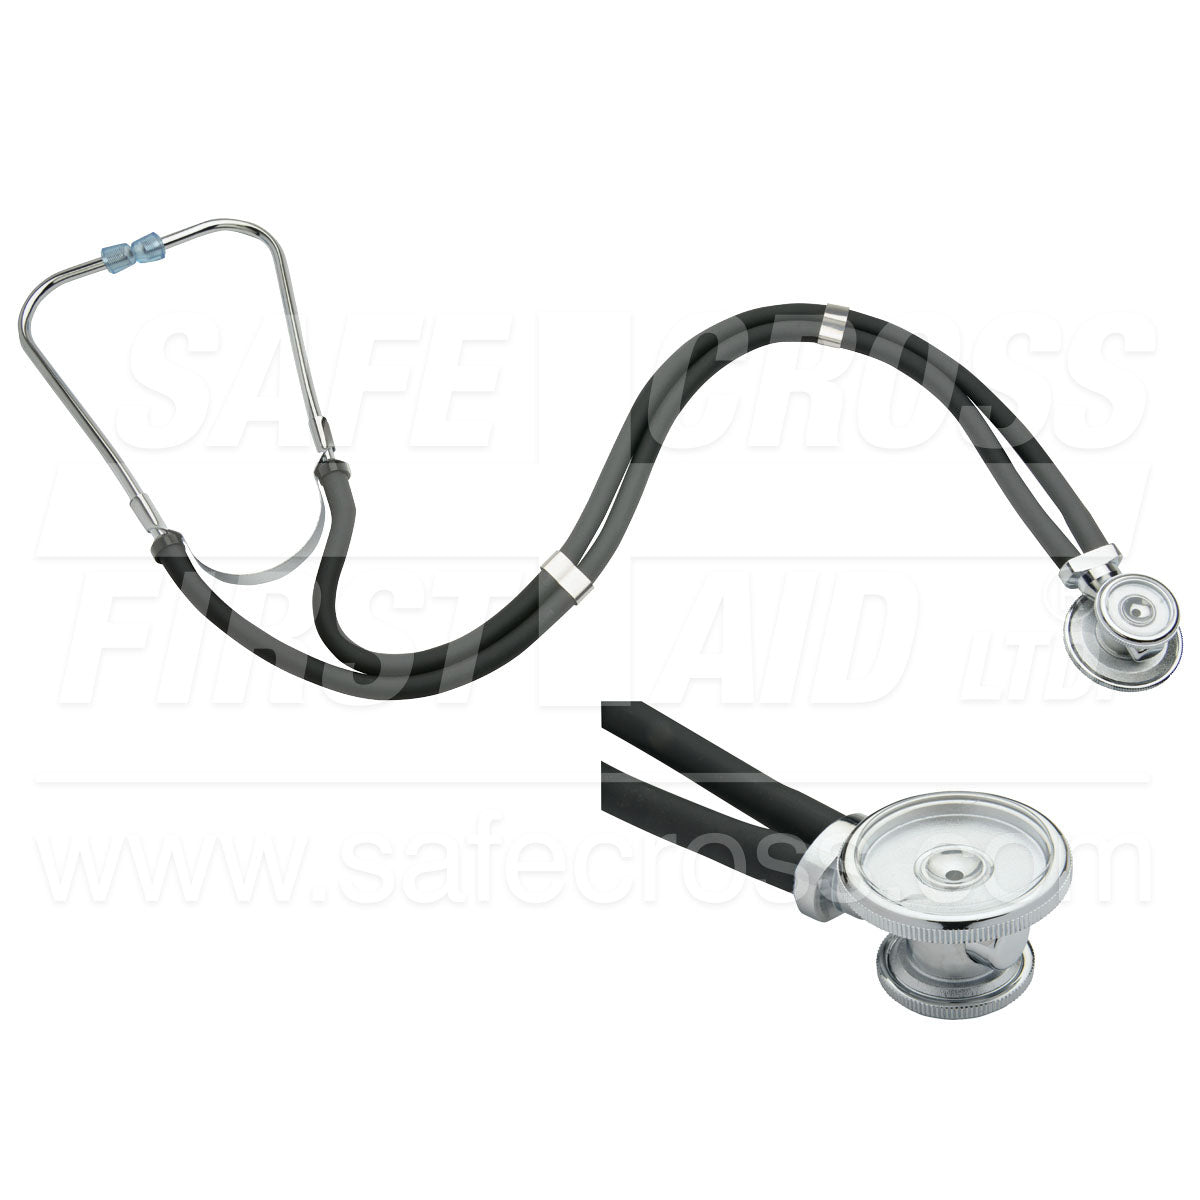 Sprague-Rappaport Stethoscopes